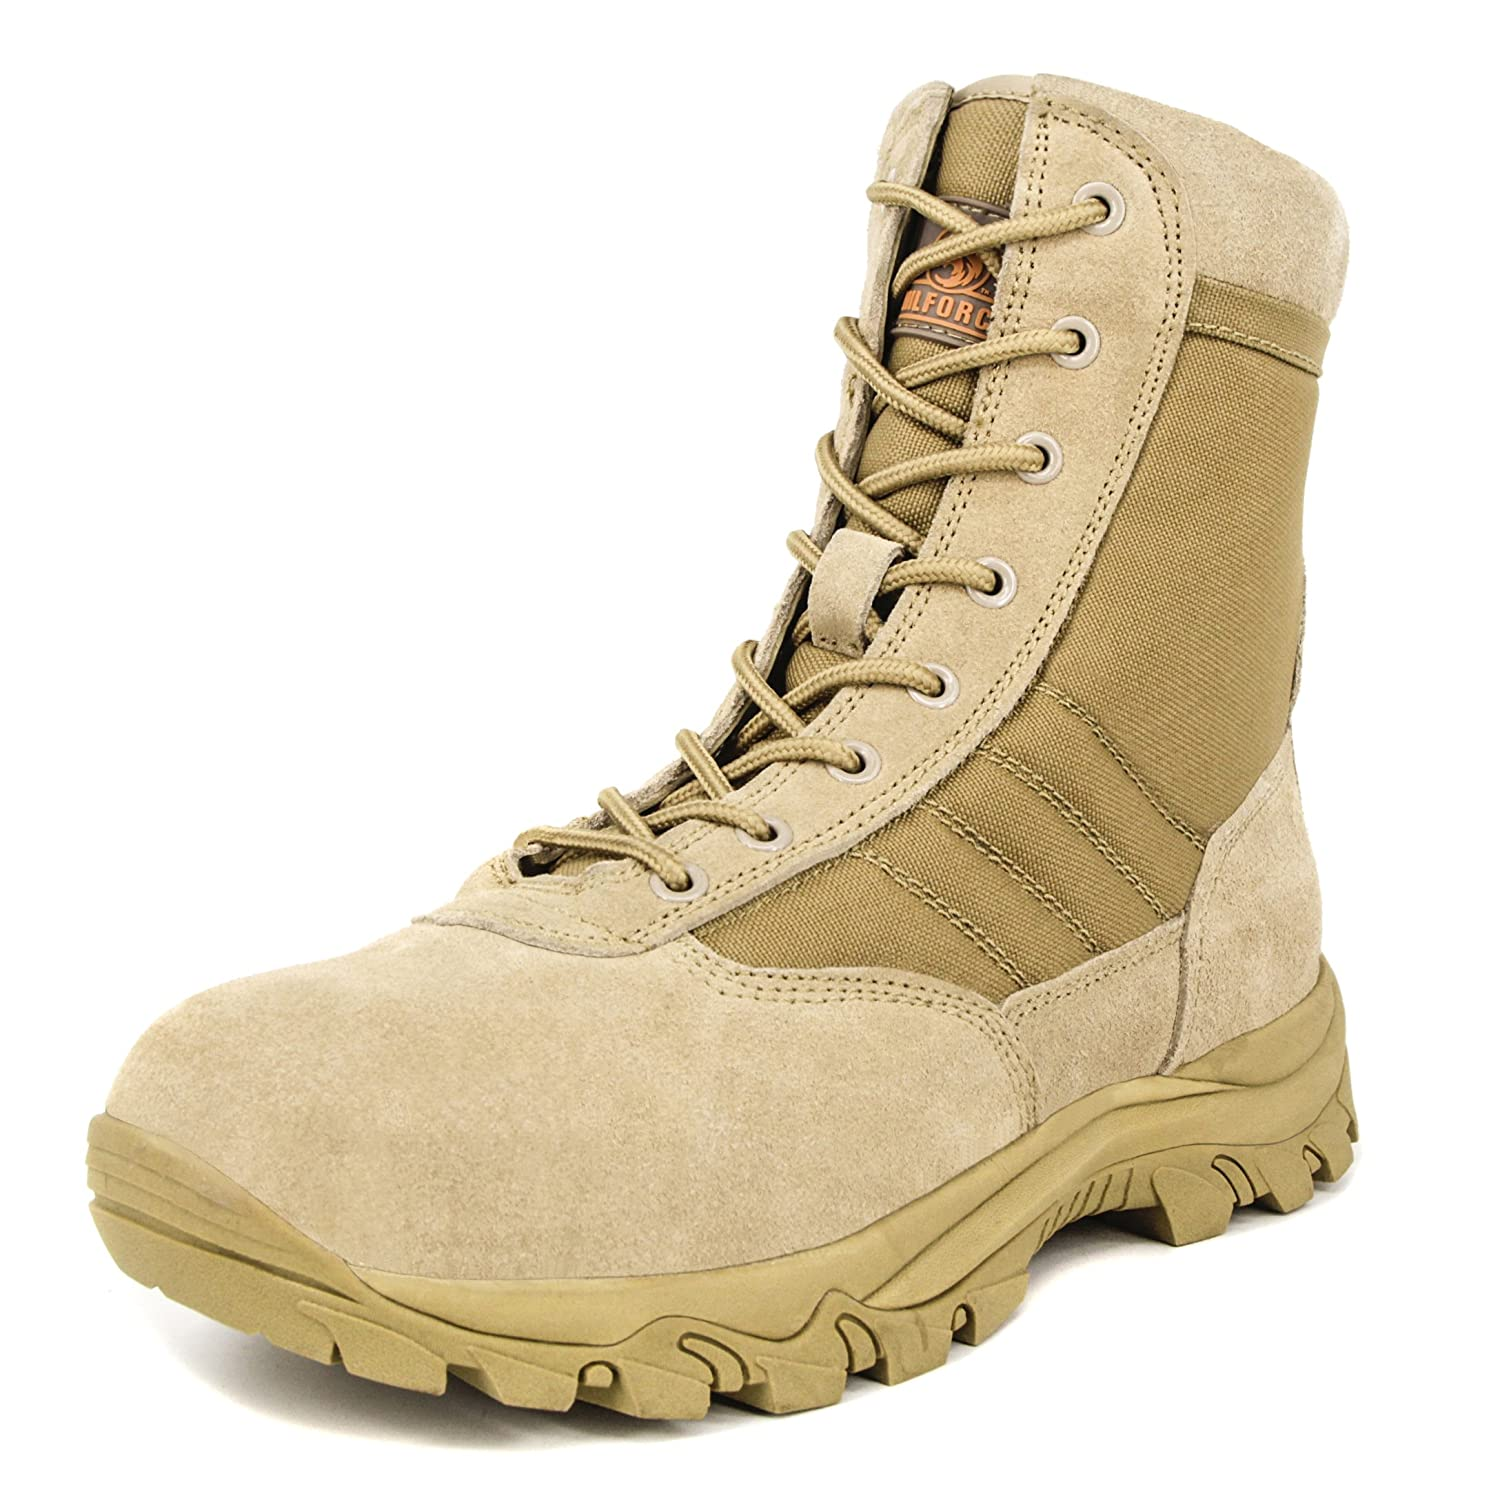 1ed35c2c573 Milforce Men's 8 inch Military Tactical Boots Lightweight Combat Desert  Shoes with Side Zipper, Sand